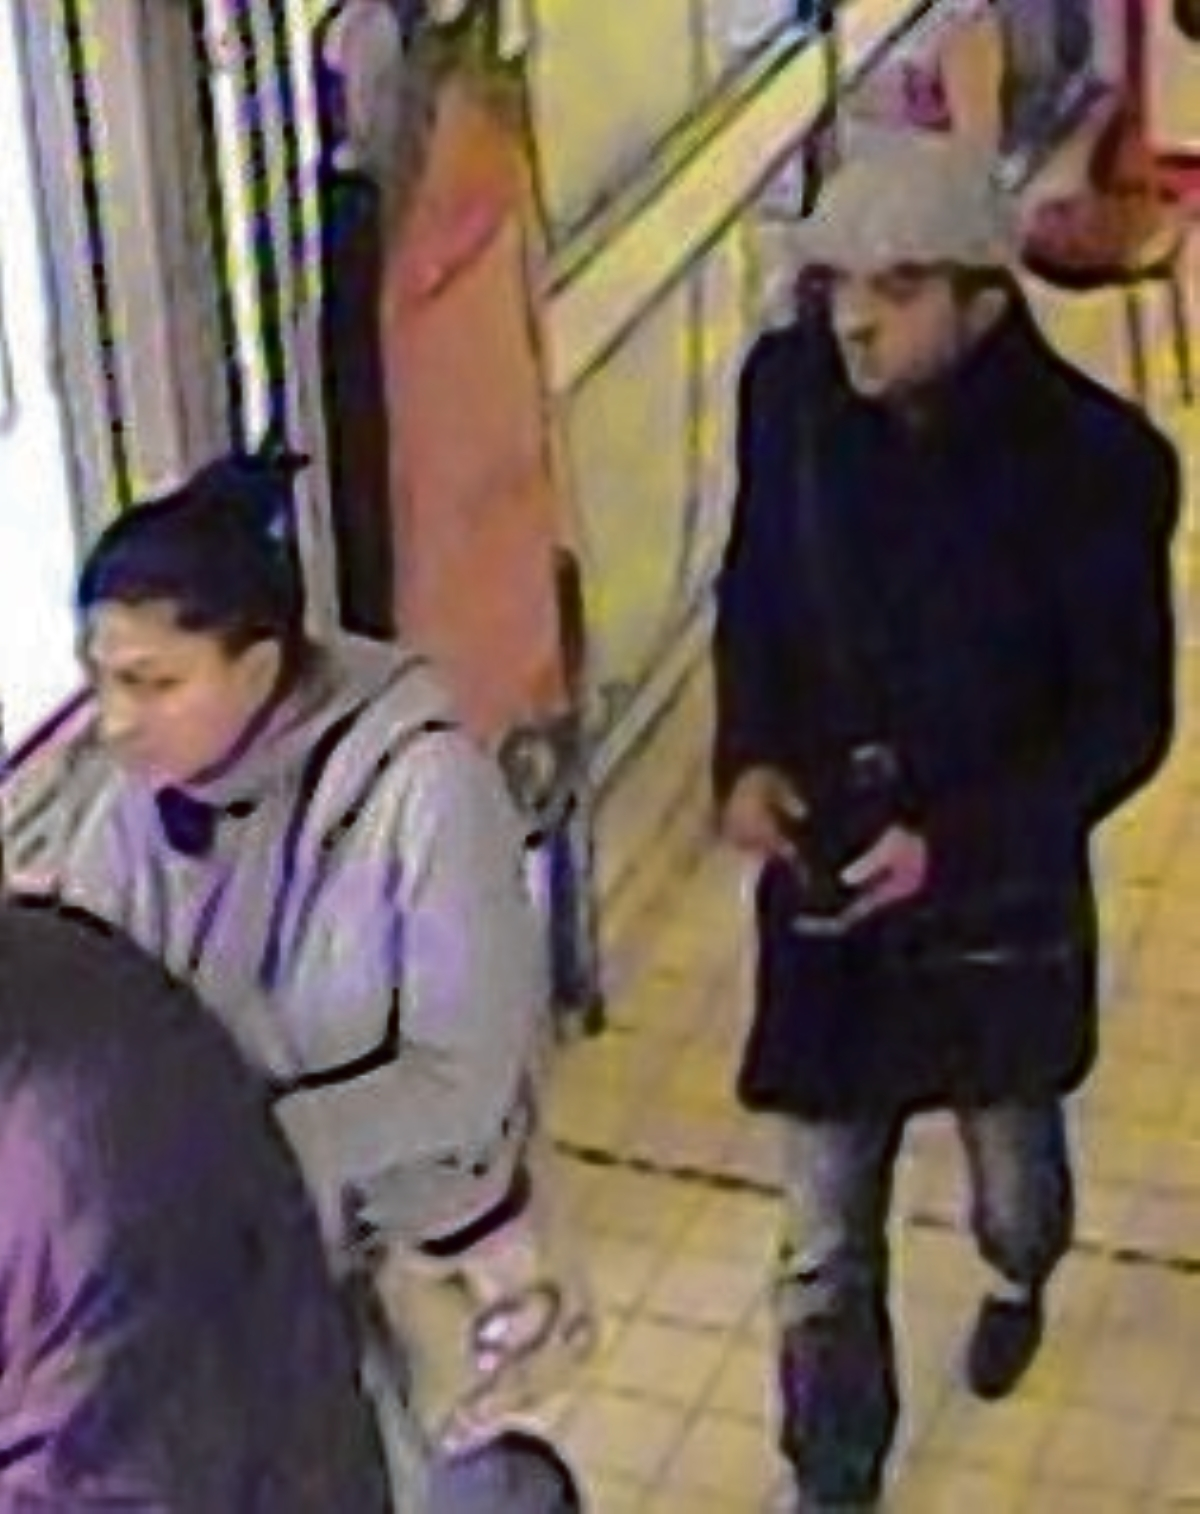 Pair stole £100 from elderly victim in distraction theft